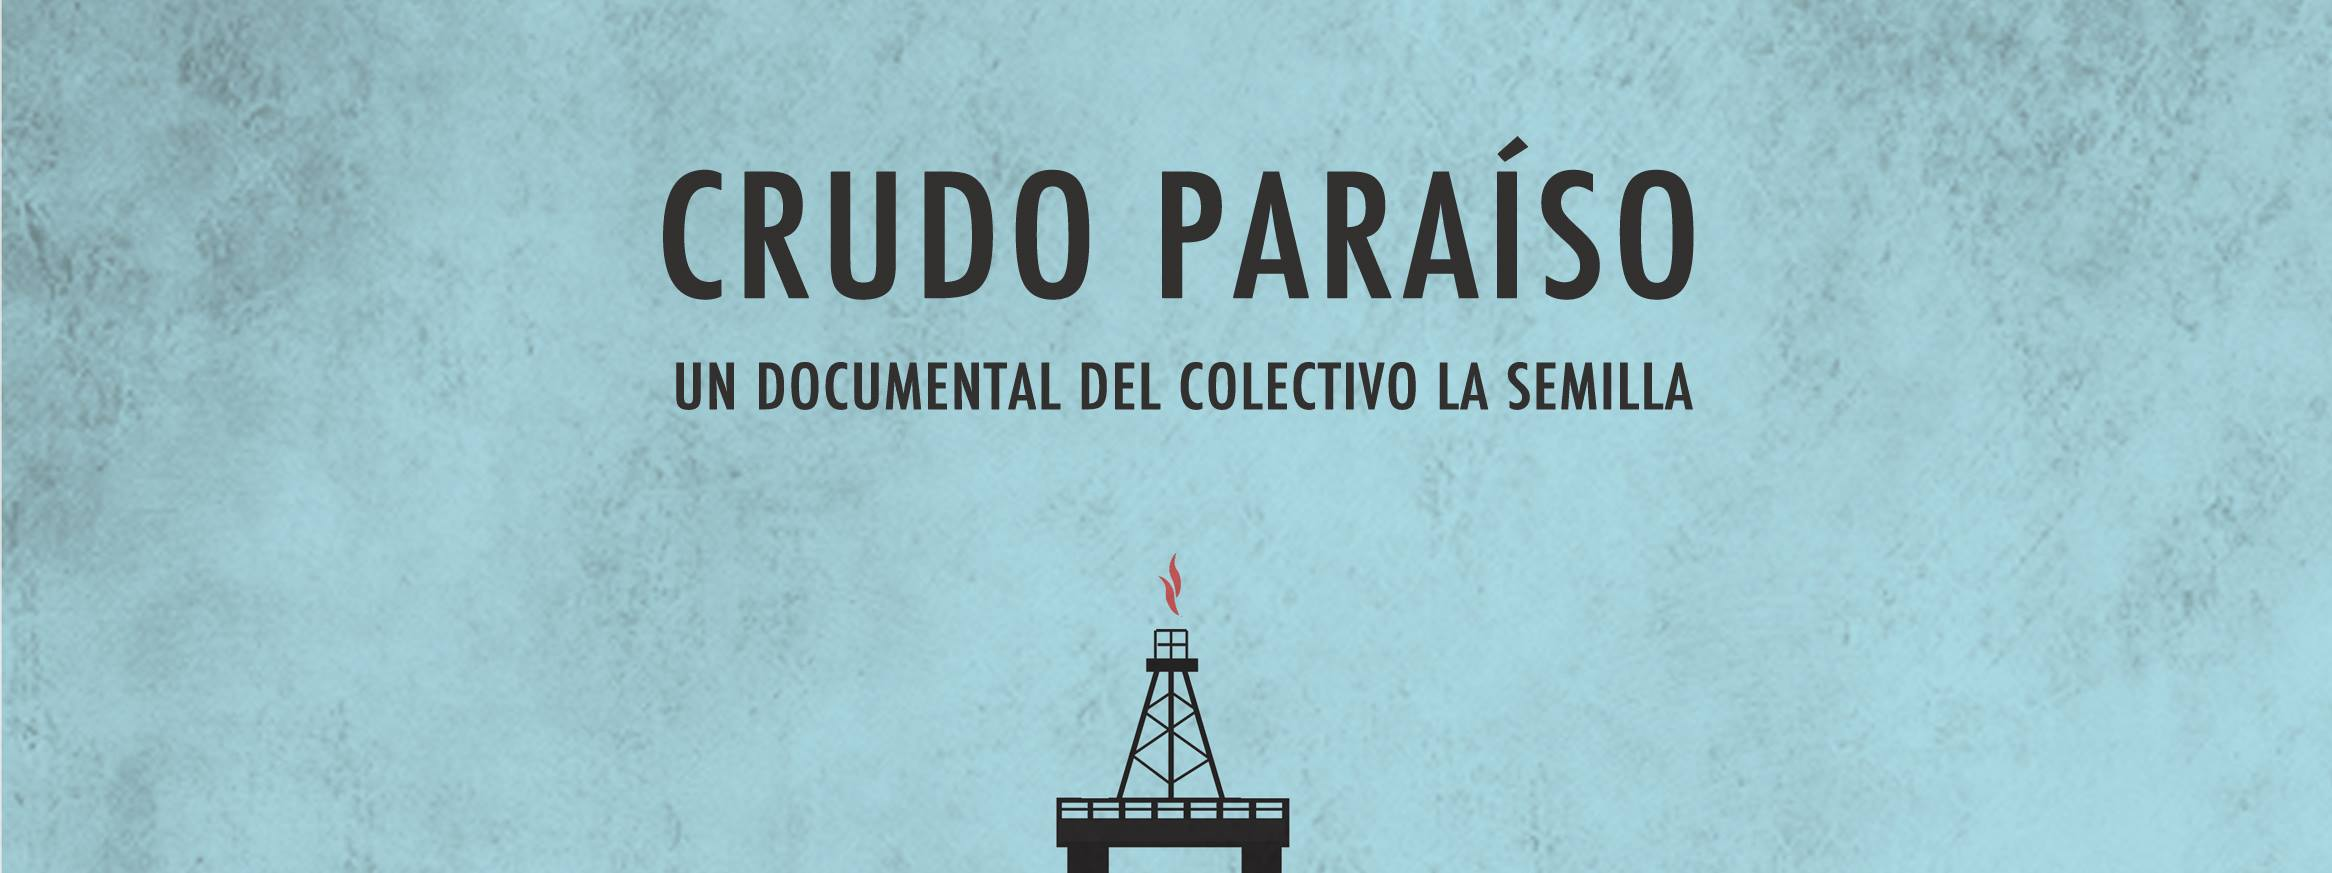 crudo paraíso documental